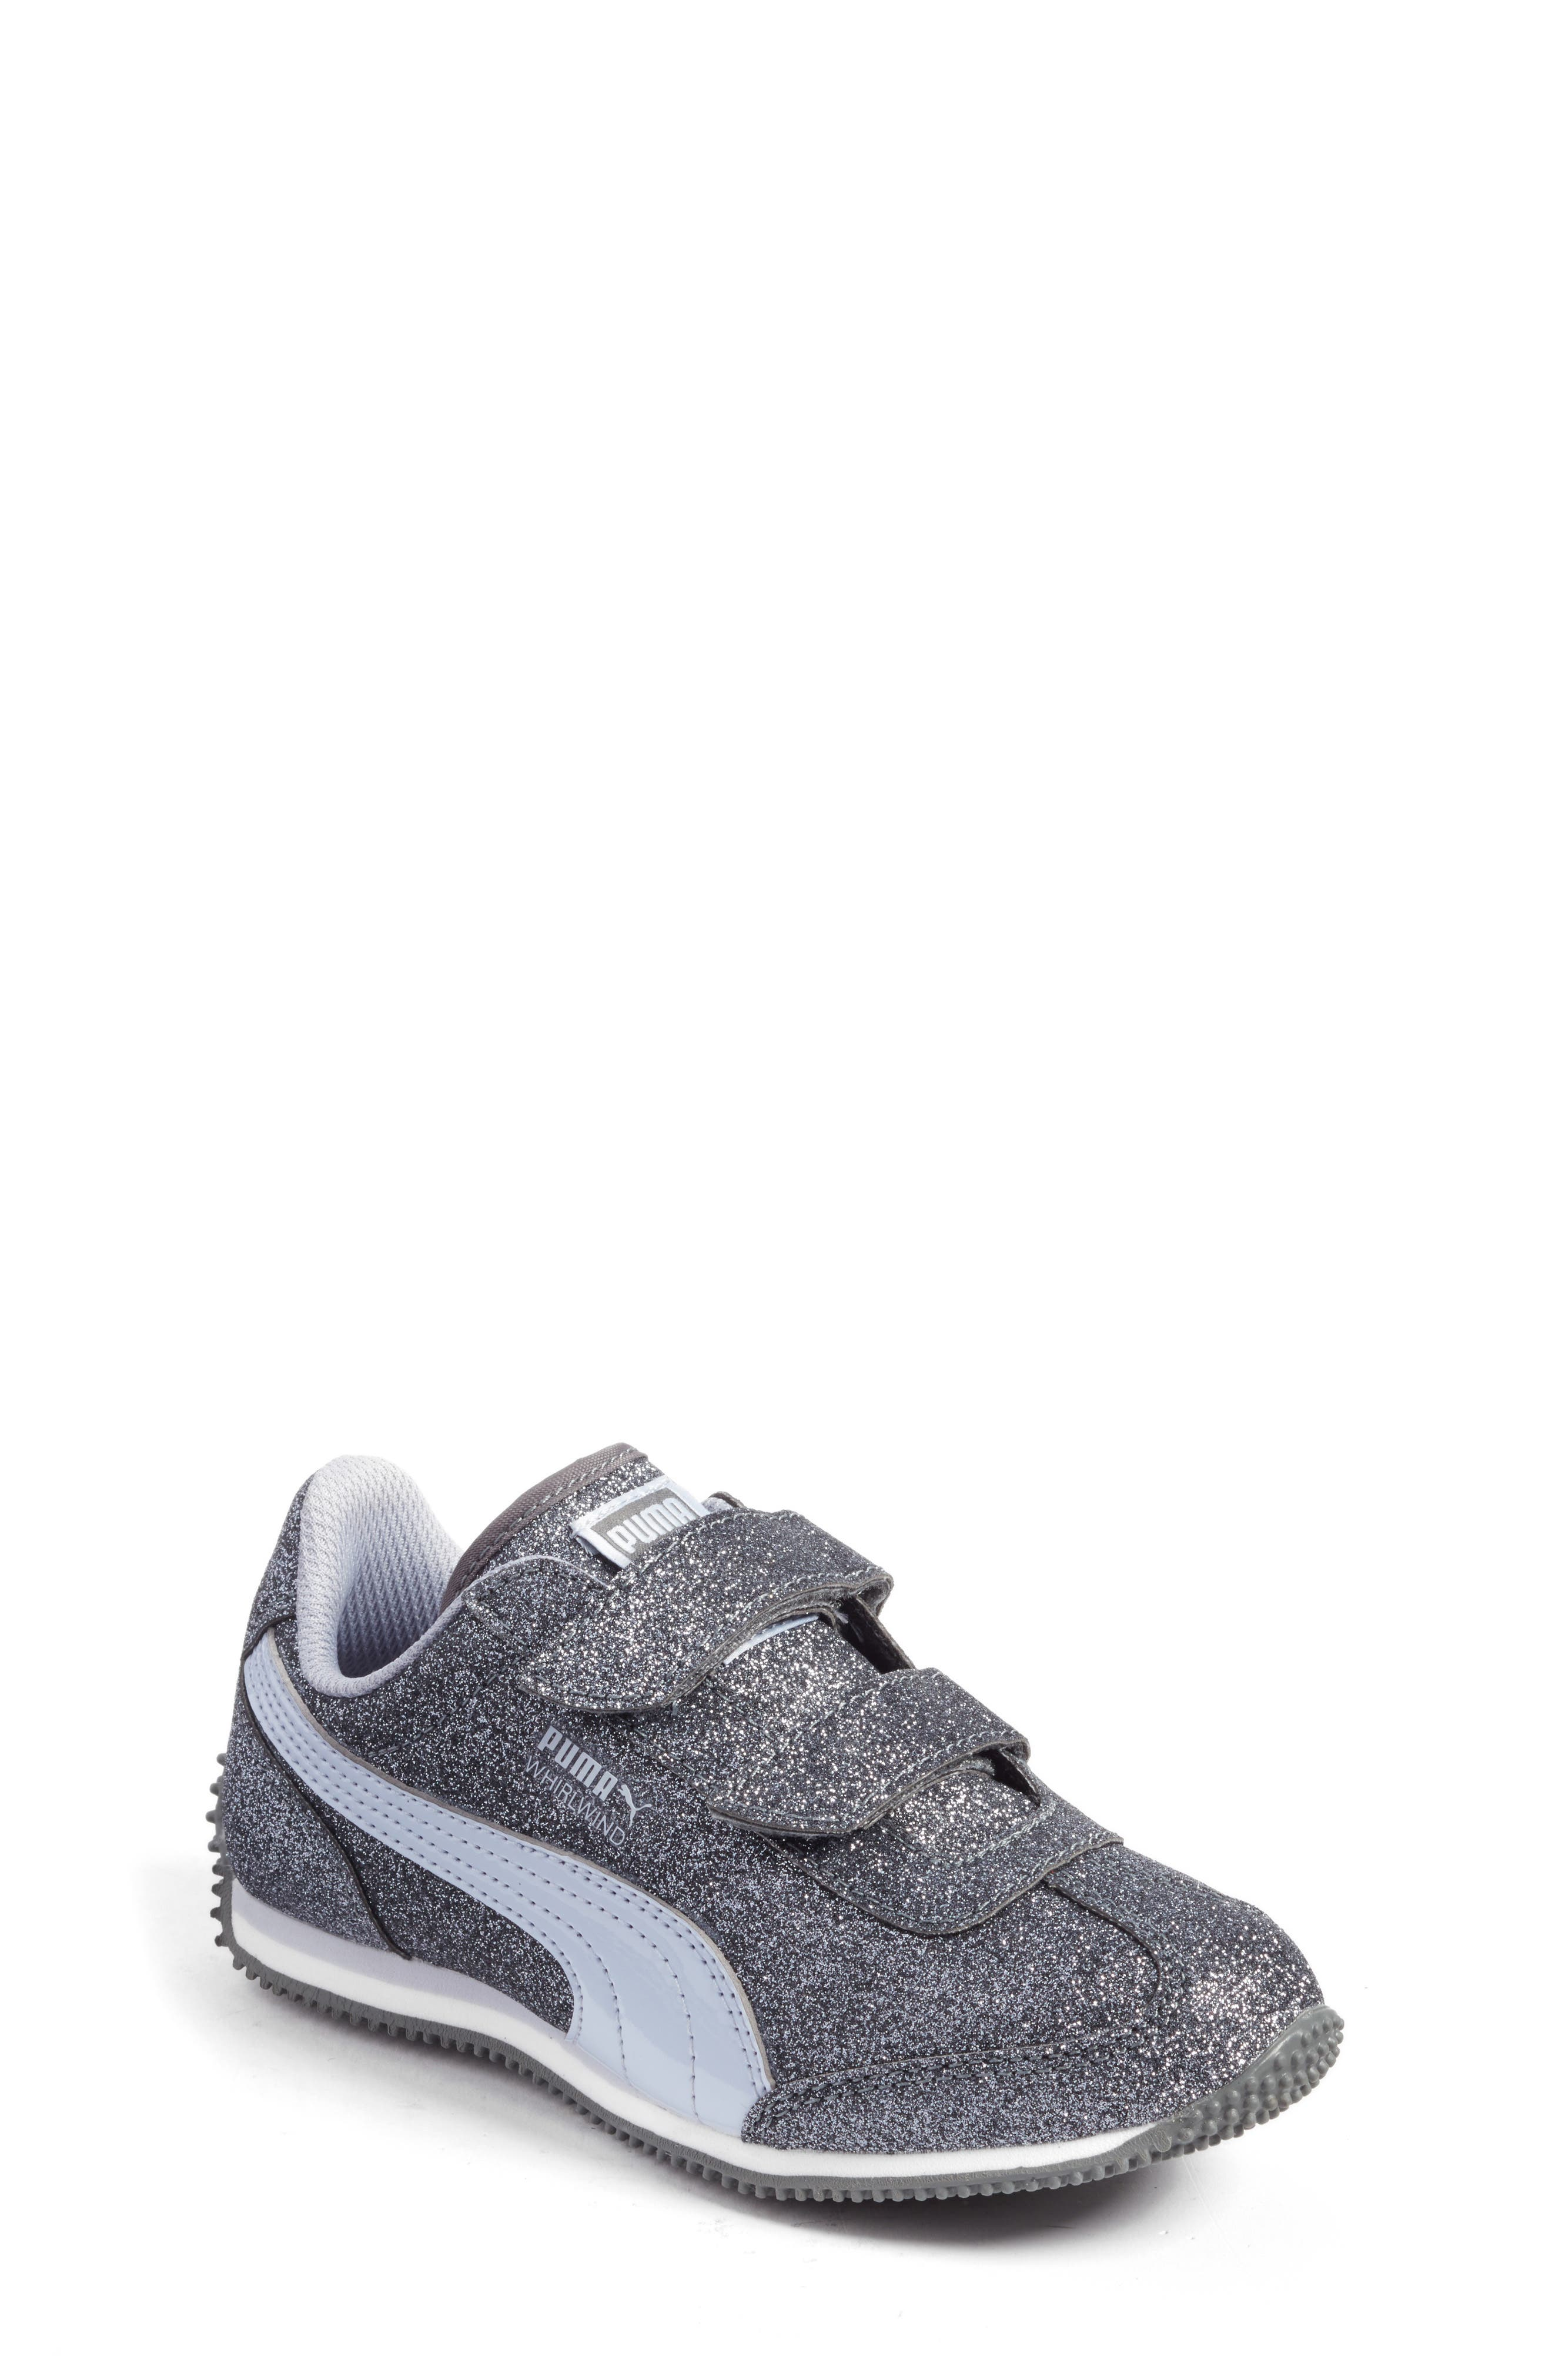 Main Image - PUMA Whirlwind Glitz Sneaker (Toddler, Little Kid & Big Kid)